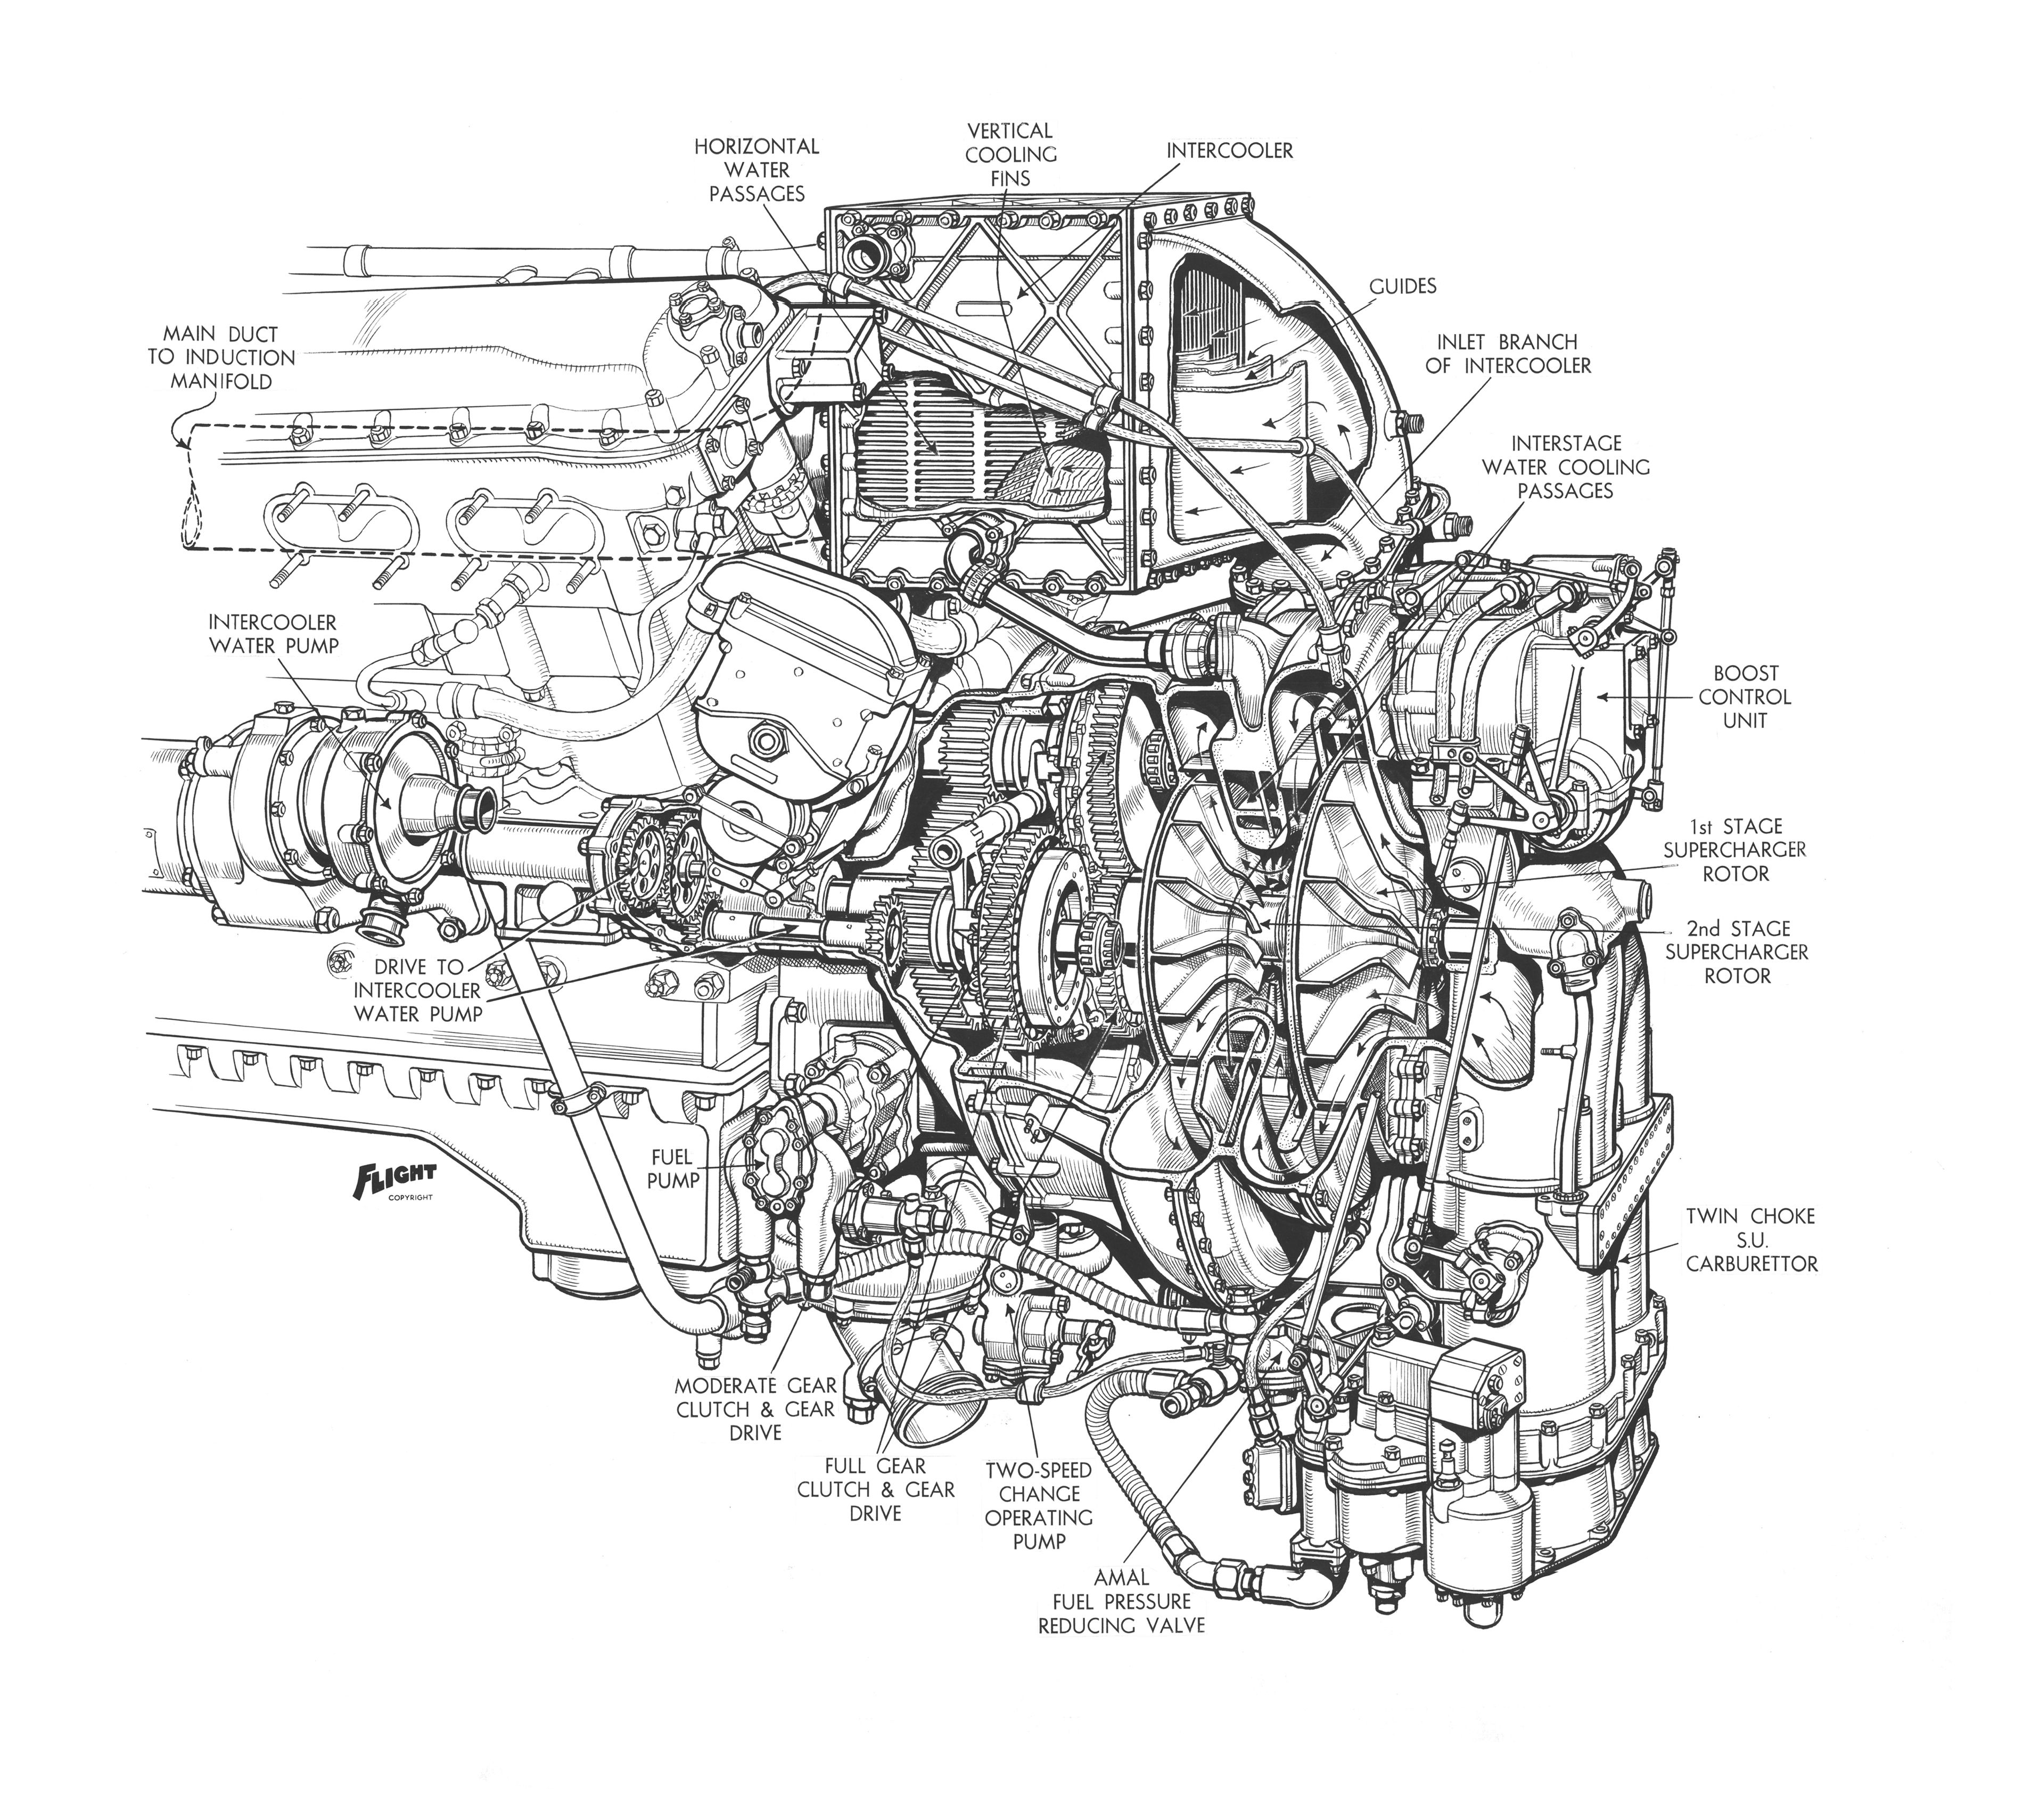 Rolls Royce Merlin 61 Cutaway Drawing